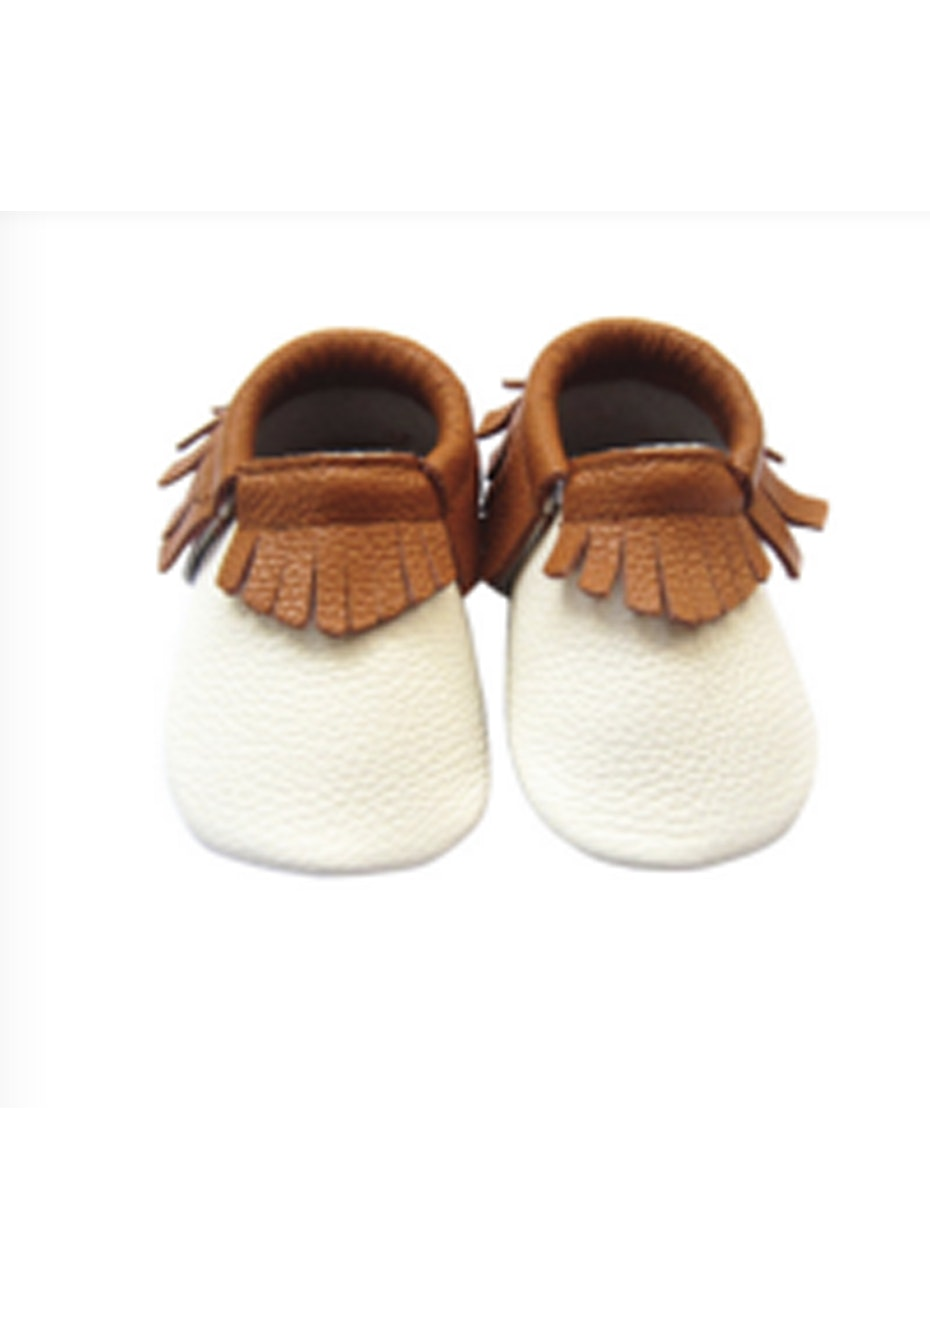 Baby  Leather Shoes - Brown/White